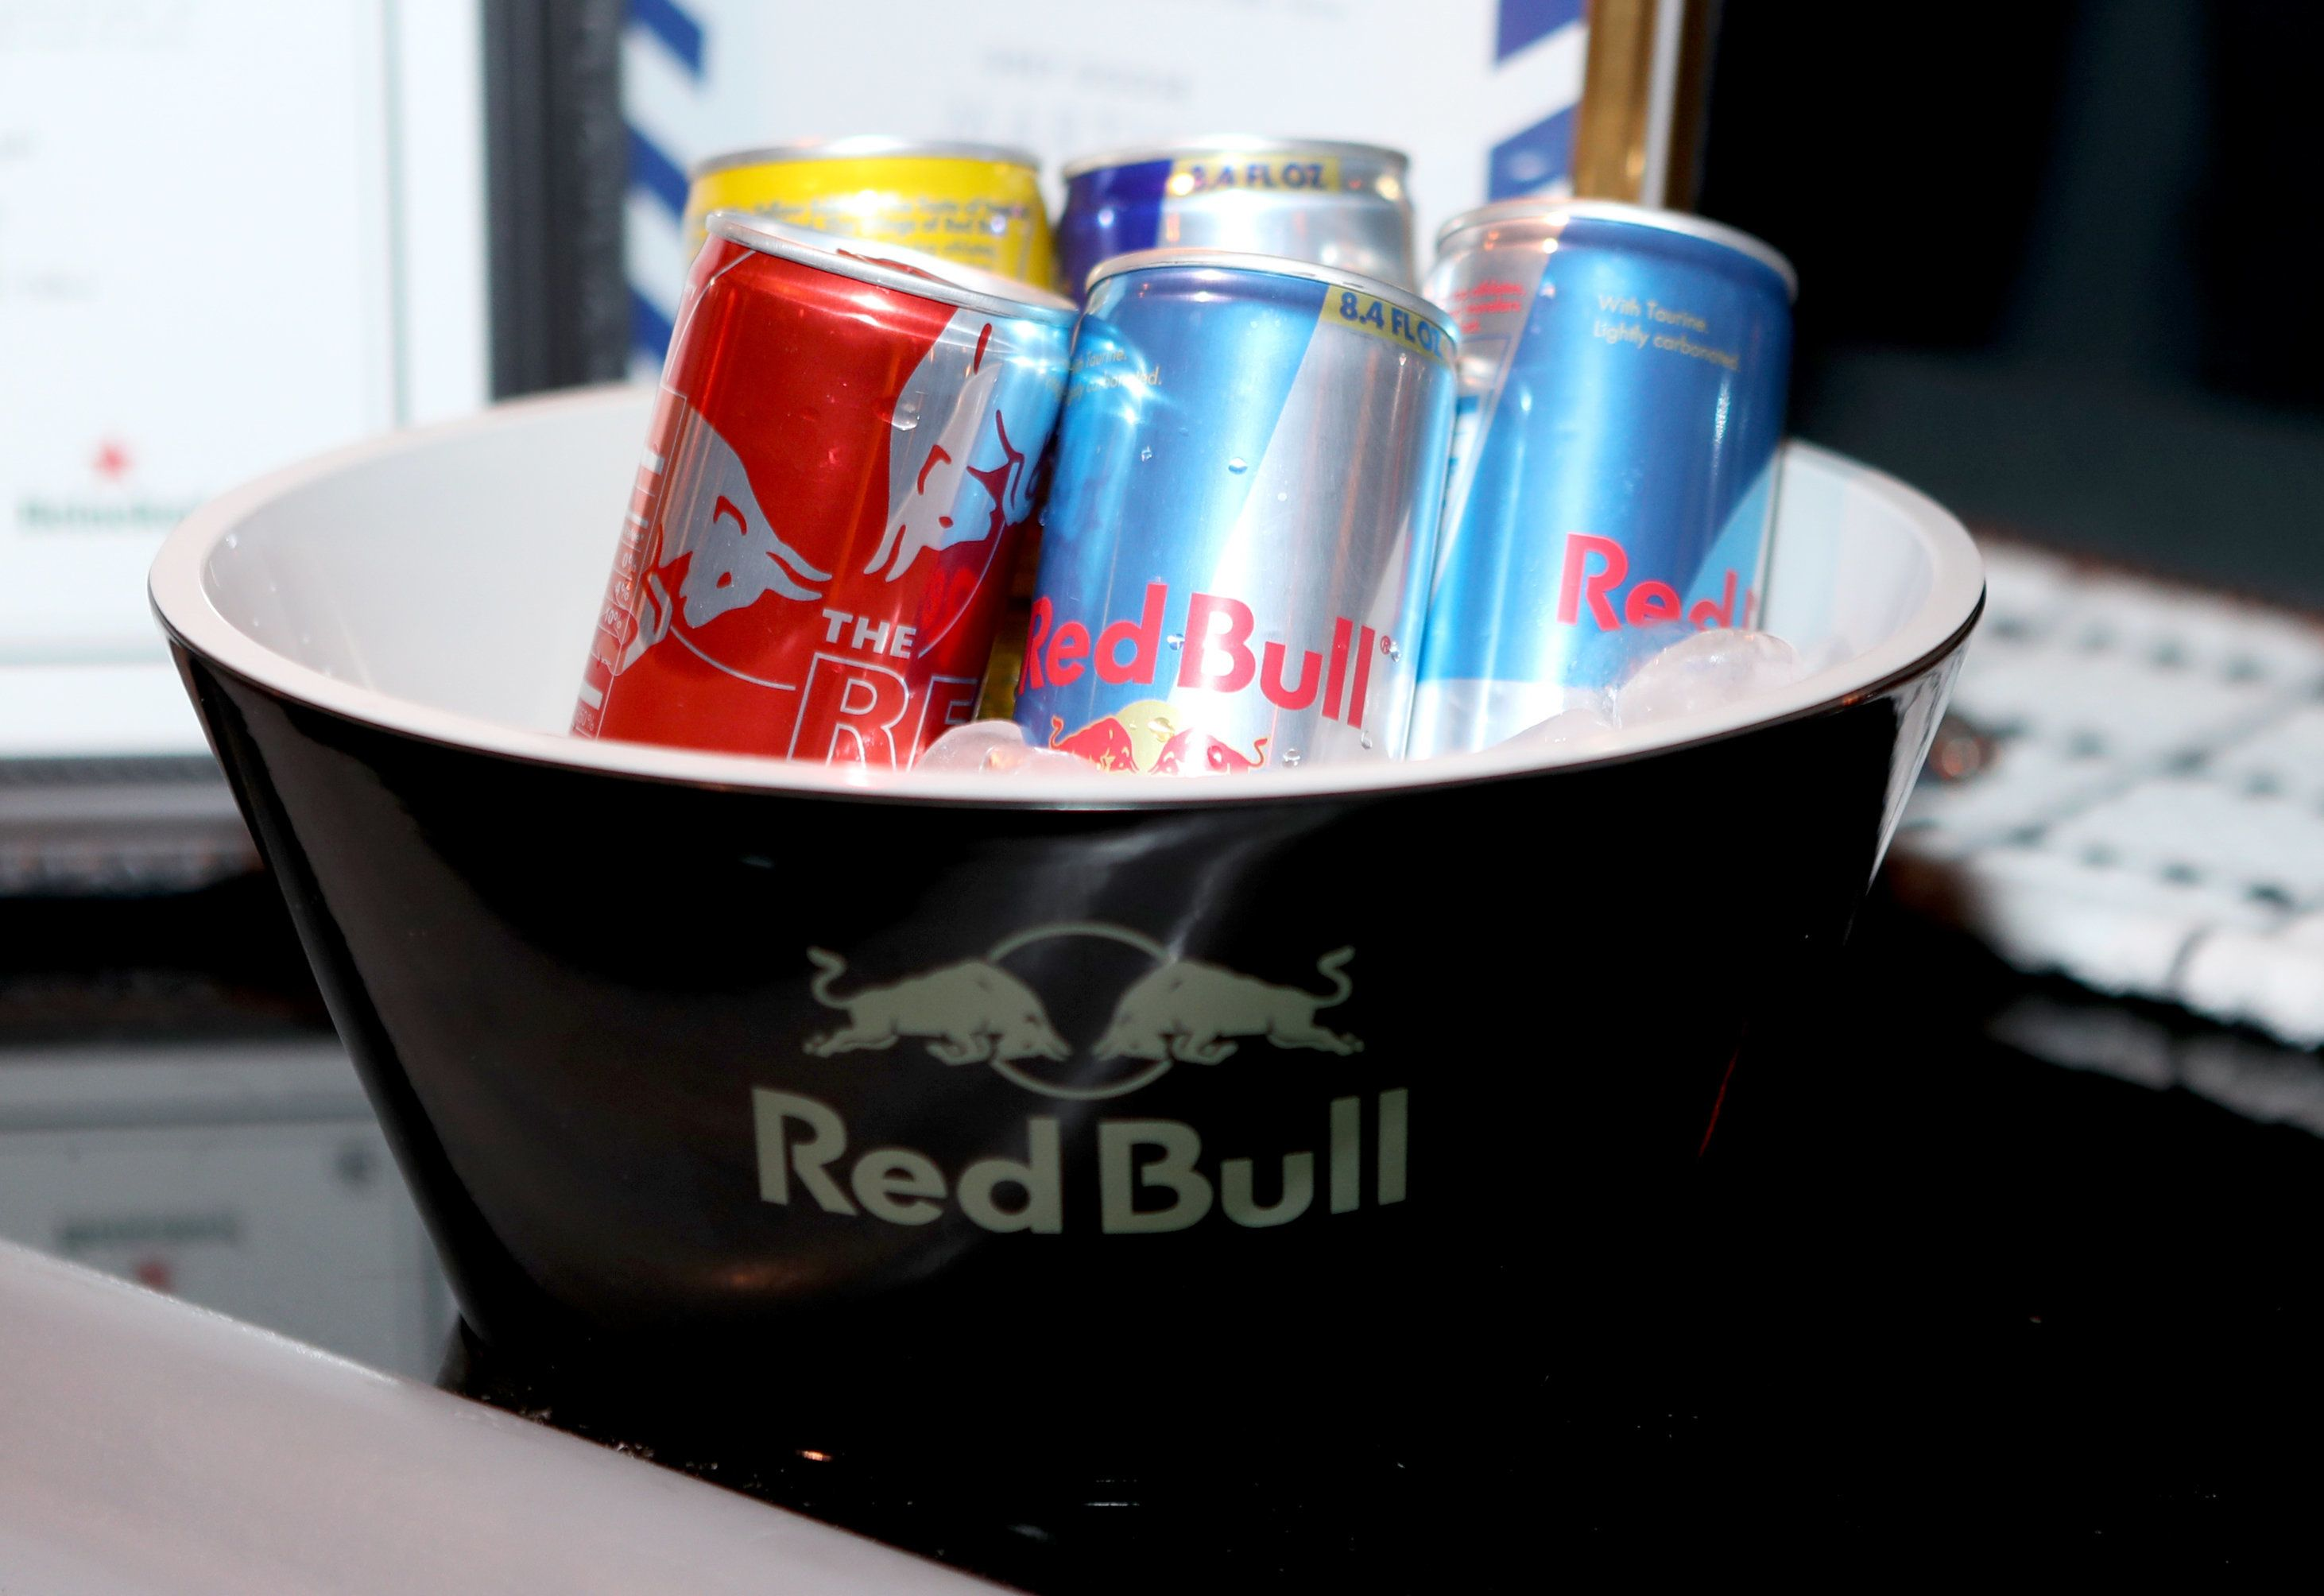 BEVERLY HILLS, CA - JANUARY 08:  An ice bucket full of Red Bull beverages is displayed at The Weinstein Company and Netflix Golden Globe Party, presented with FIJI Water, Grey Goose Vodka, Lindt Chocolate, and Moroccanoil at The Beverly Hilton Hotel on January 8, 2017 in Beverly Hills, California.  (Photo by Randy Shropshire/Getty Images for The Weinstein Company)